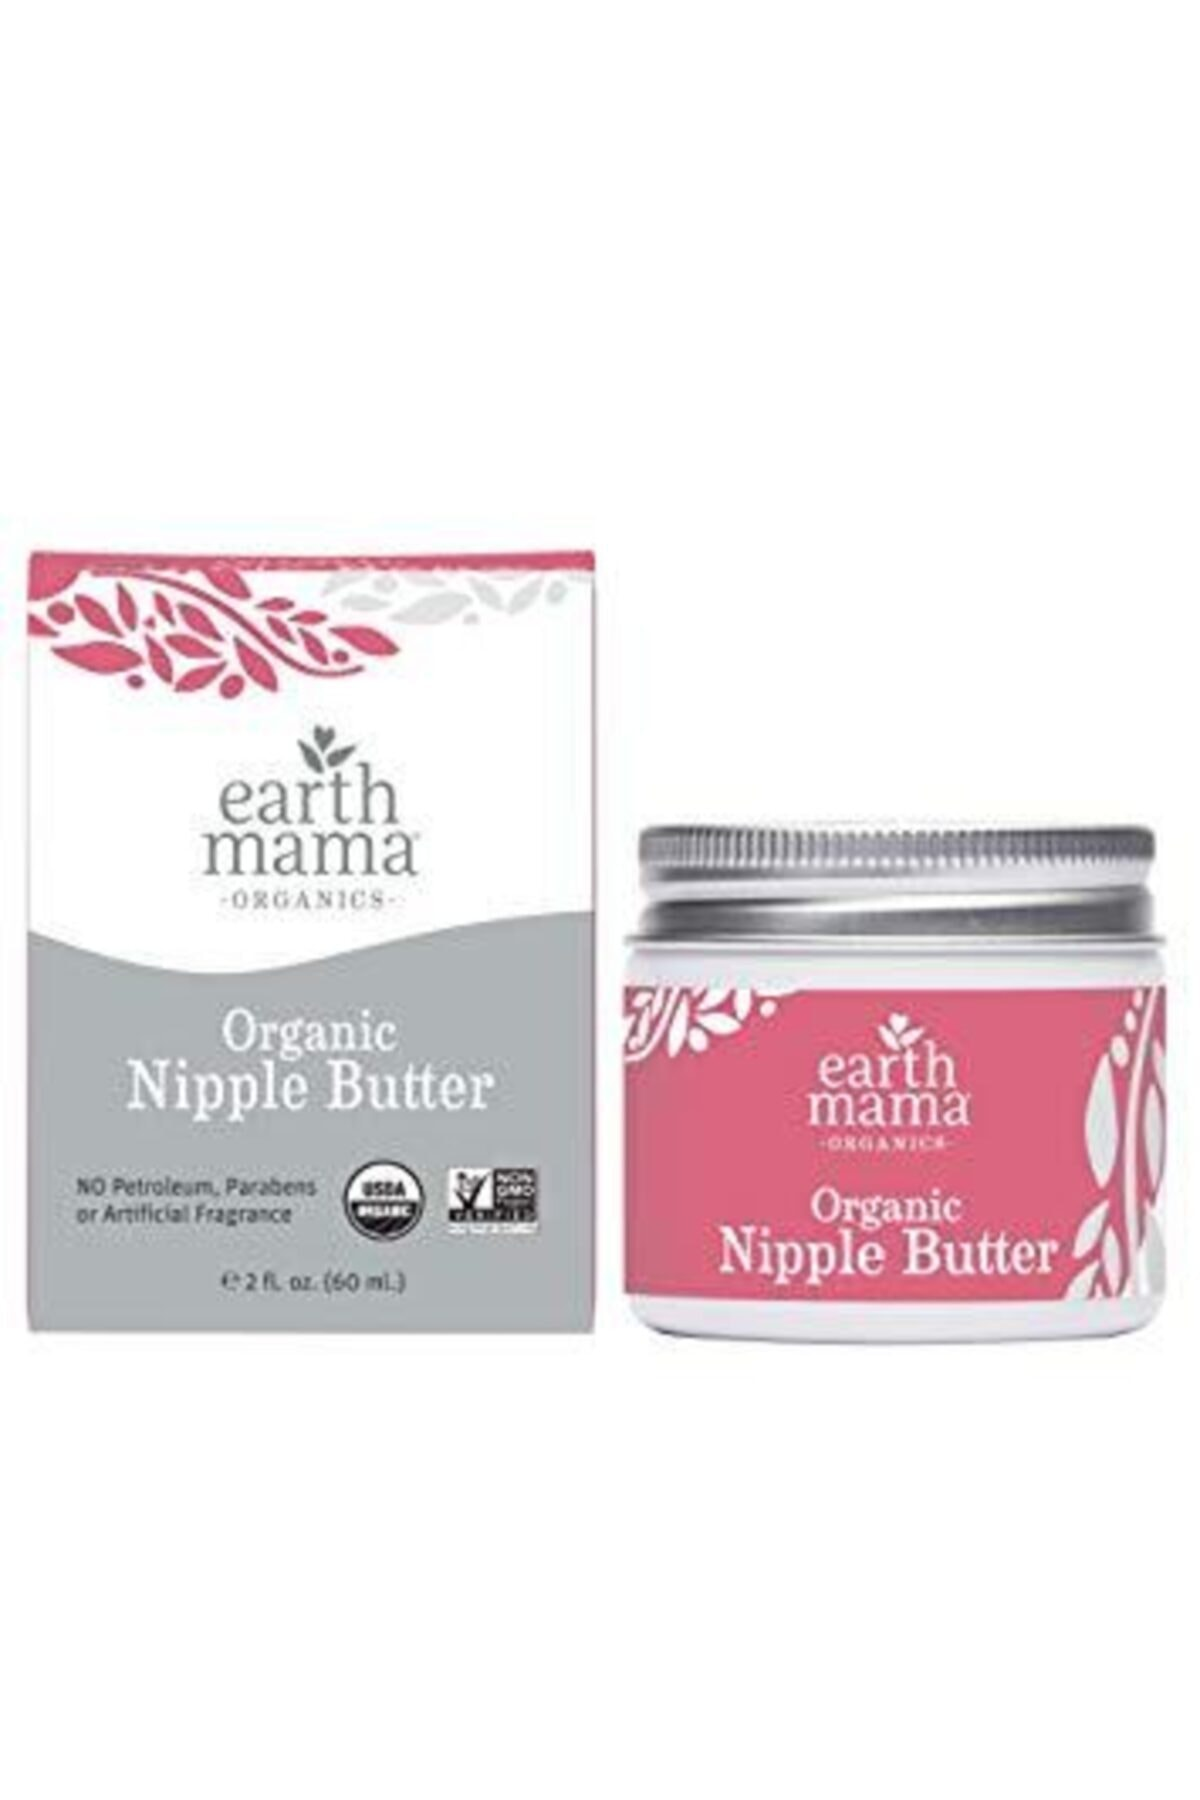 Earth Mama Angel Baby Earth Mama Organic Nipple Butter Göğüs Ucu Bakım Kremi 60ml 1